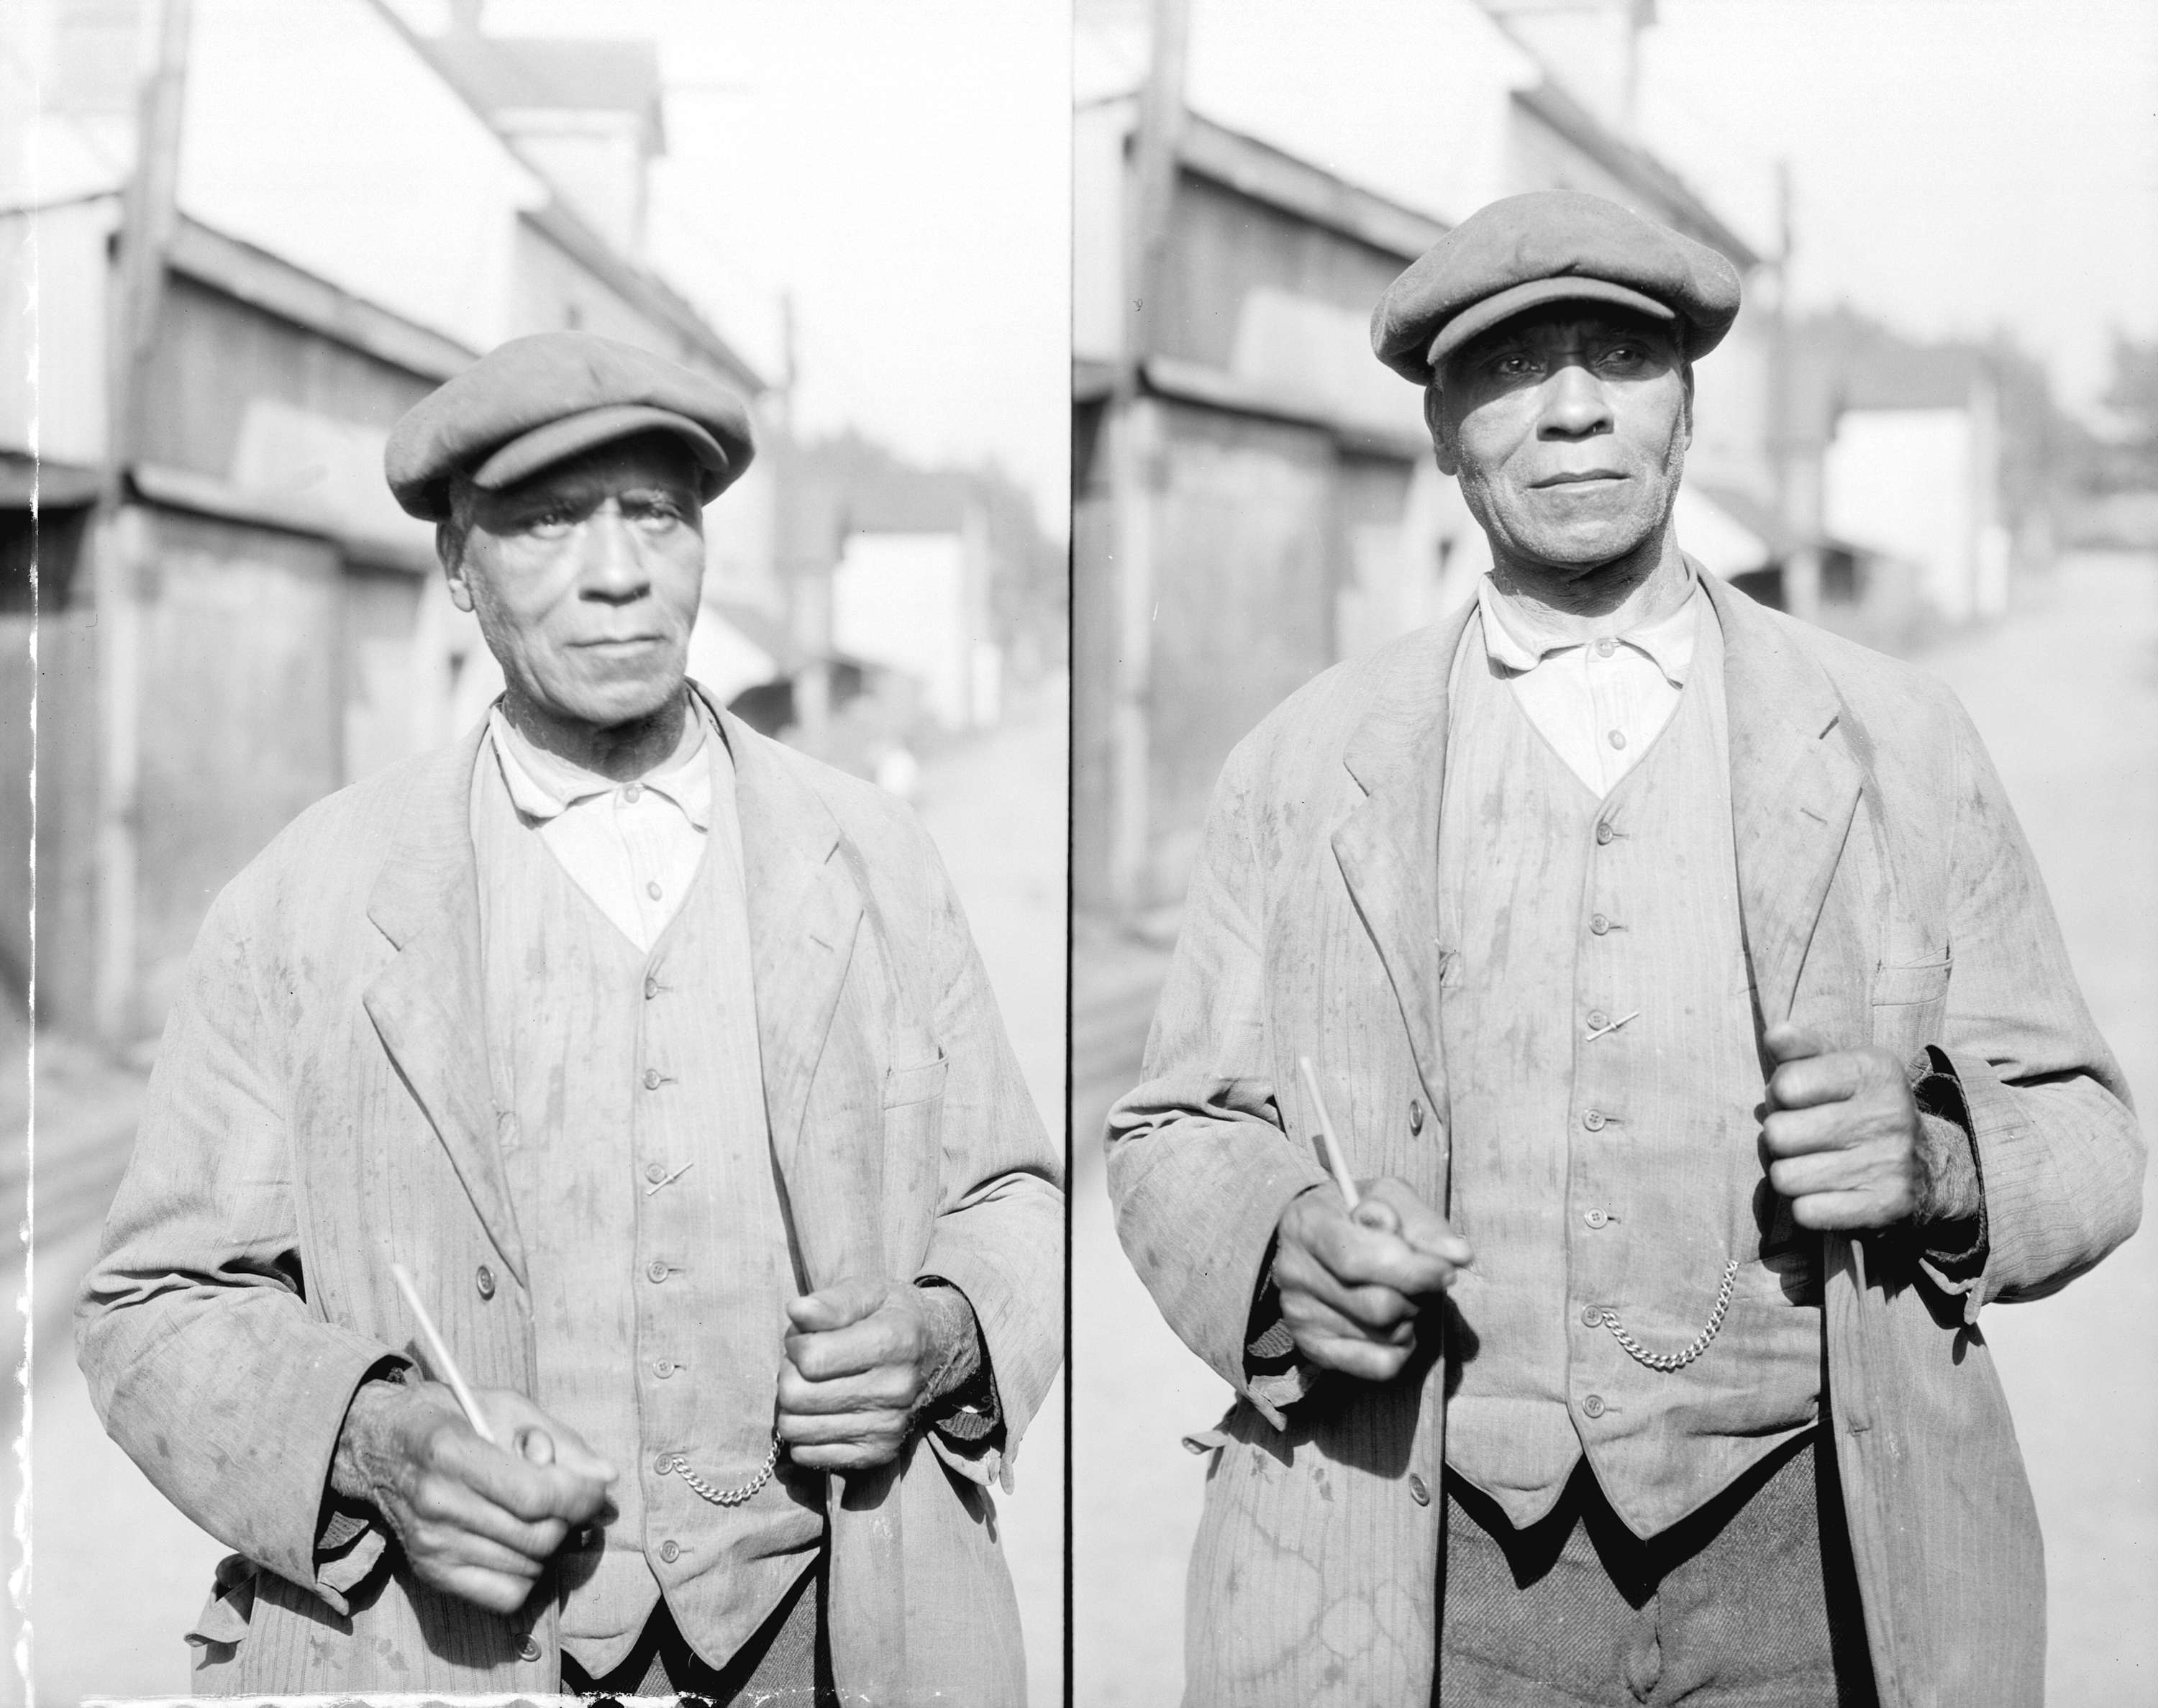 William Spotts in Hogan's Alley on May 28th, 1935.